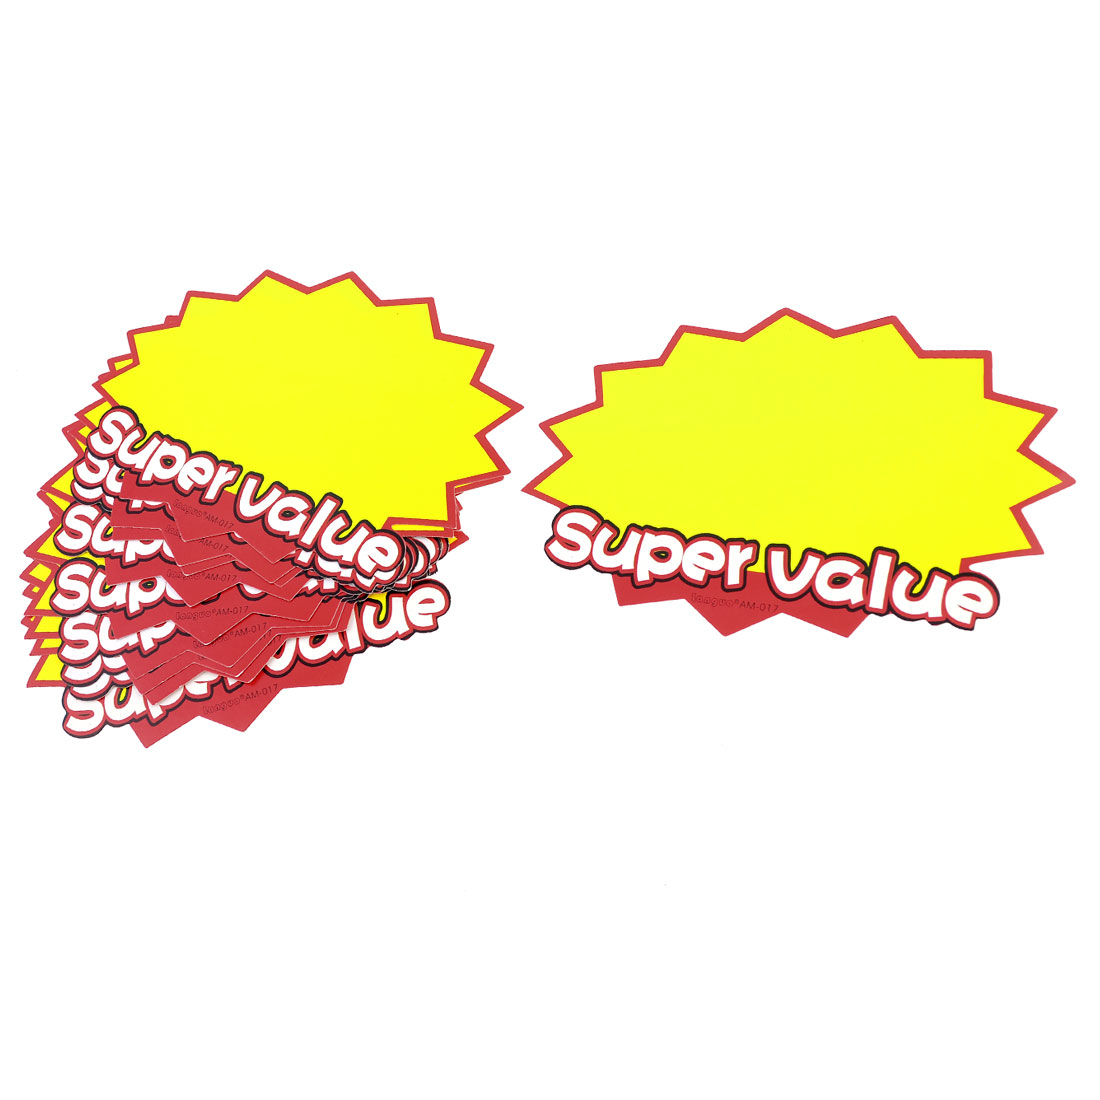 10 Pcs Supermarket Supervalue Printed Advertising Pop Price Tags Yellow Red